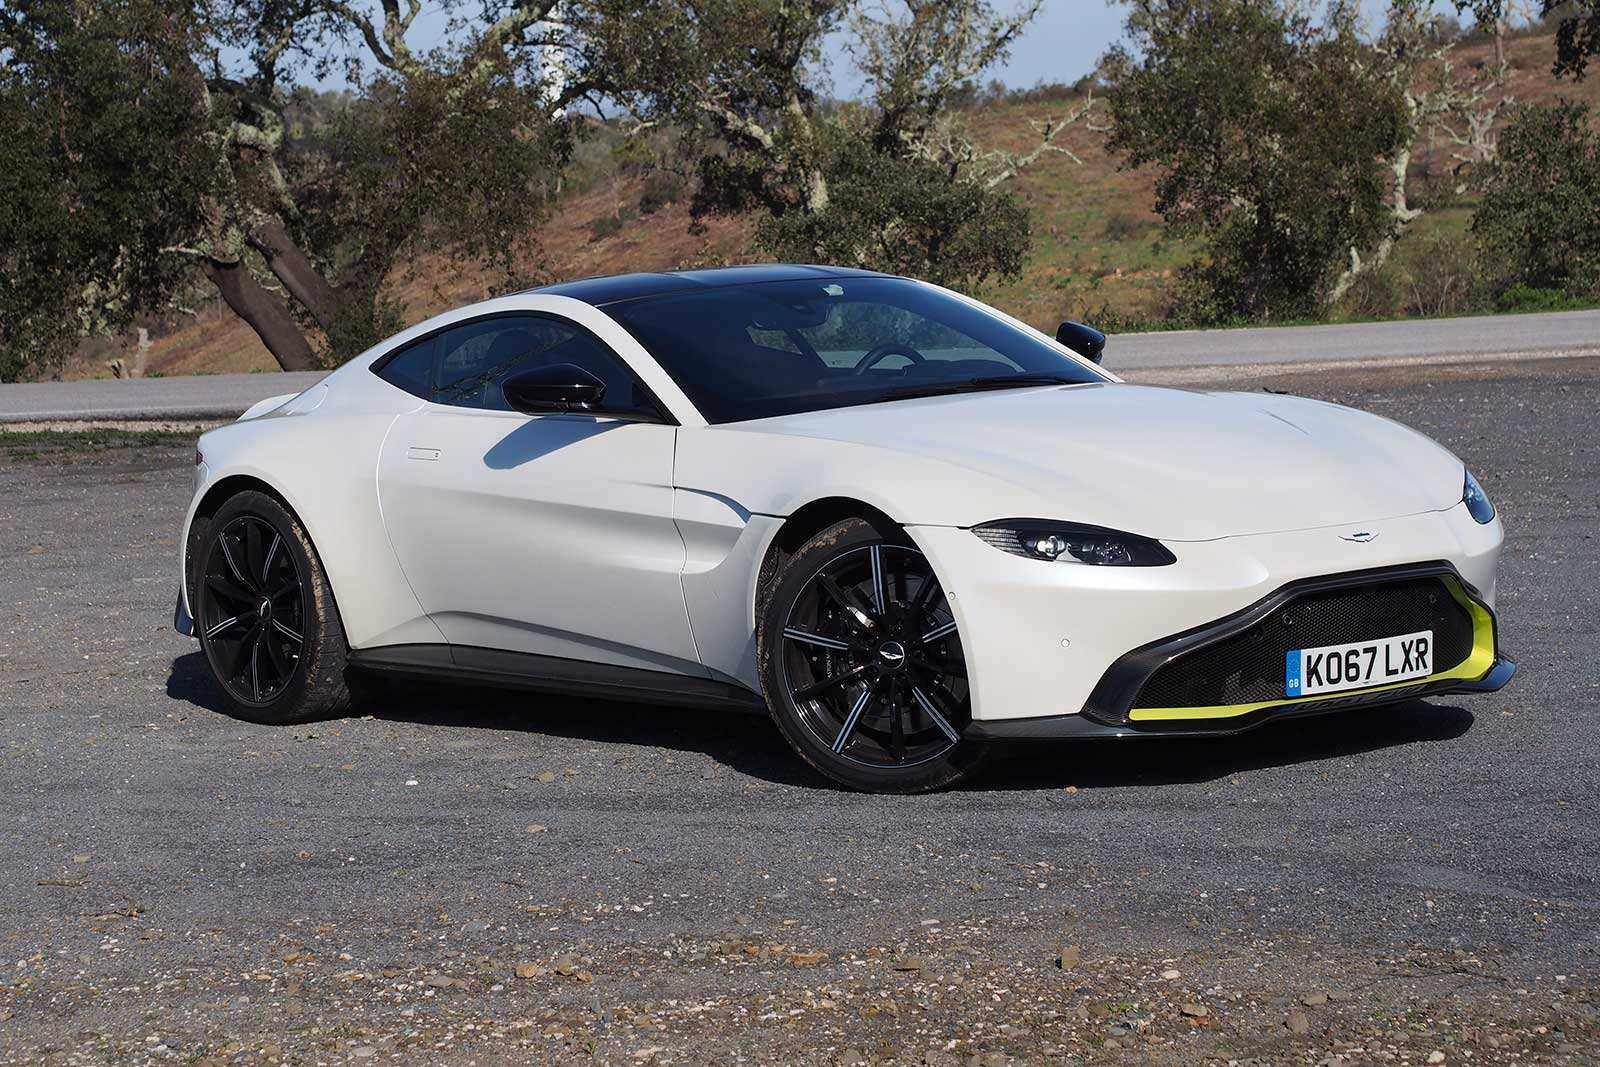 68 All New 2019 Aston Martin Vantage Pictures with 2019 Aston Martin Vantage